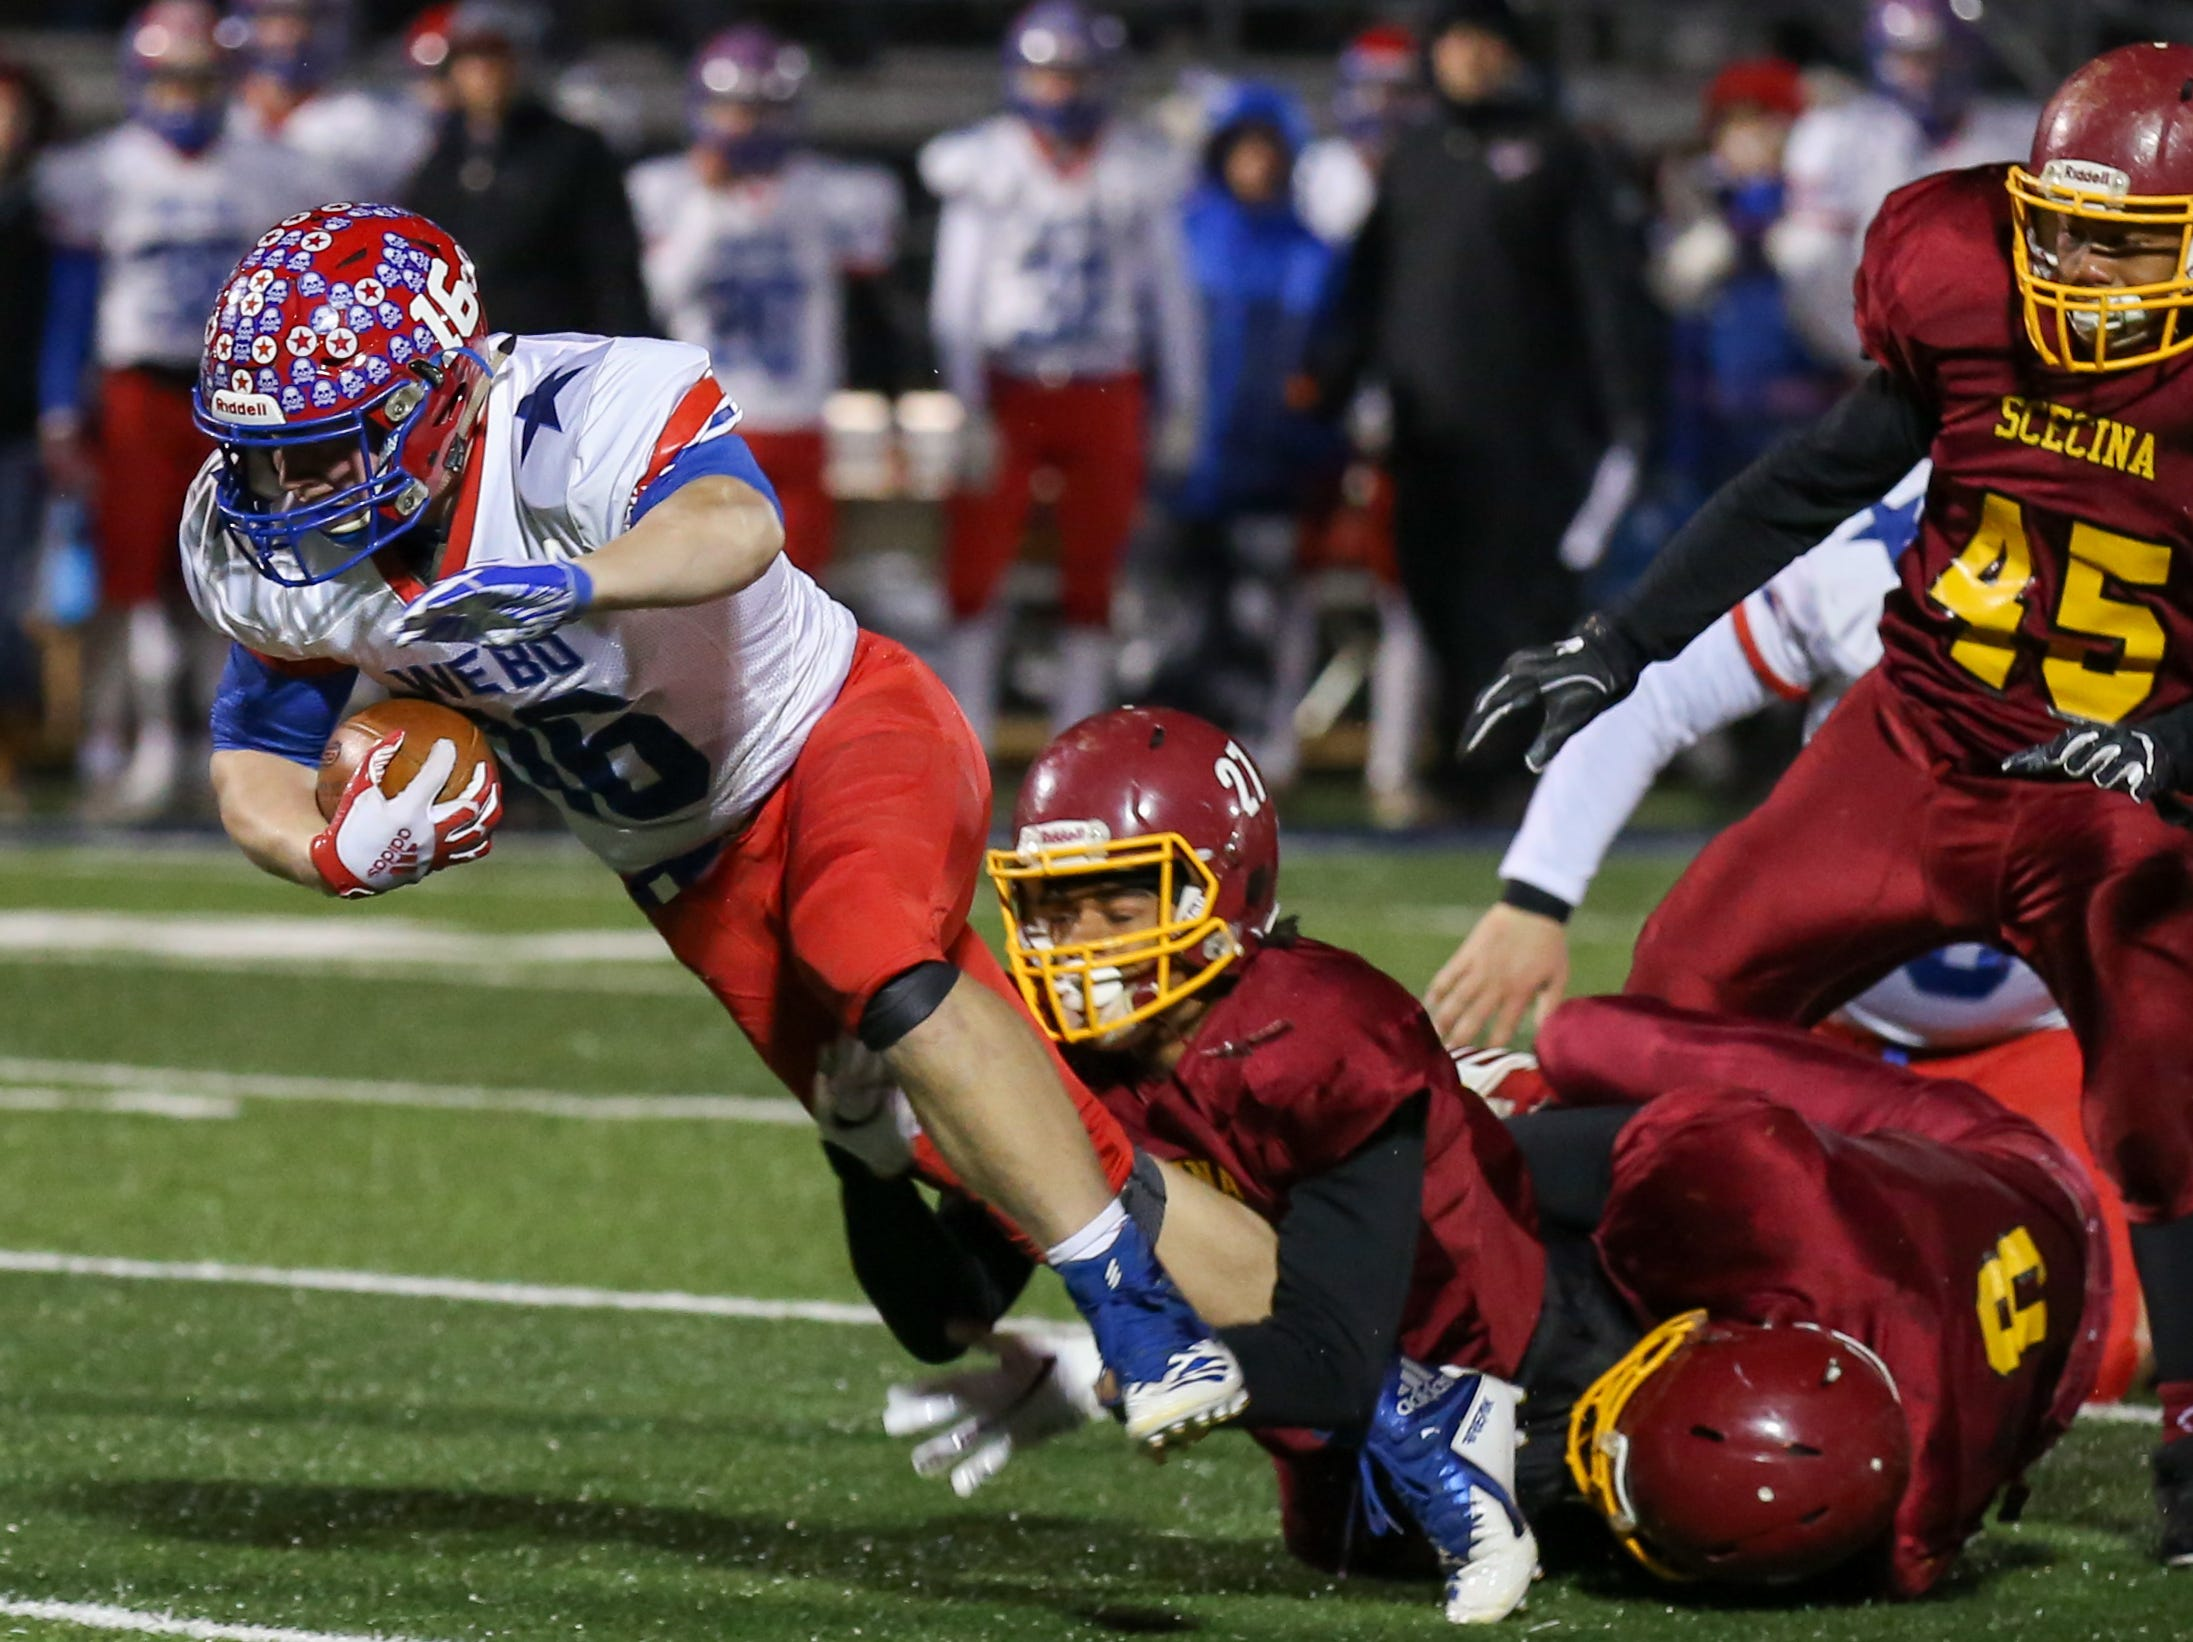 Western Boone's Brett Wethington (16) breaks some tackles for a few extra yards during the first half of Indianapolis Scecina vs Western Boone High School varsity football in the Class 2A Regional Championship held at Roncalli High School, Friday, November 9, 2018.